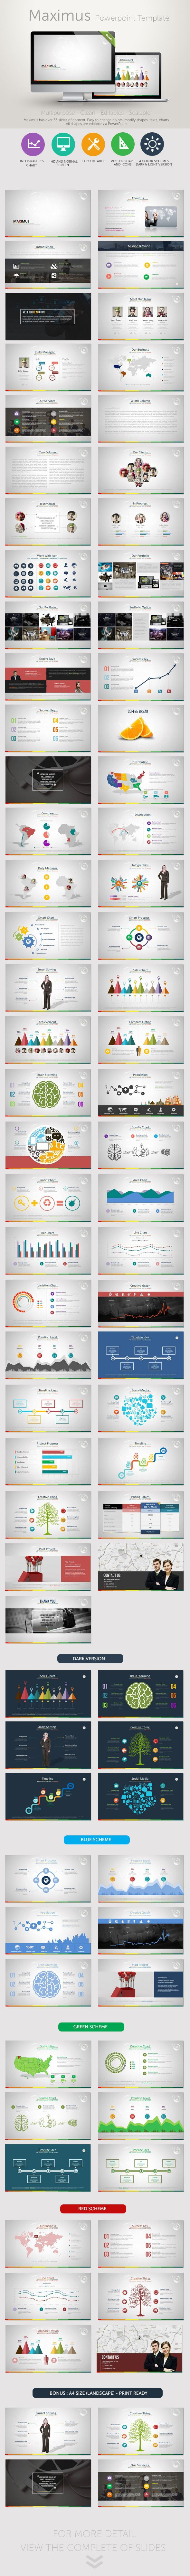 3 in 1 Bundle PowerPoint Template